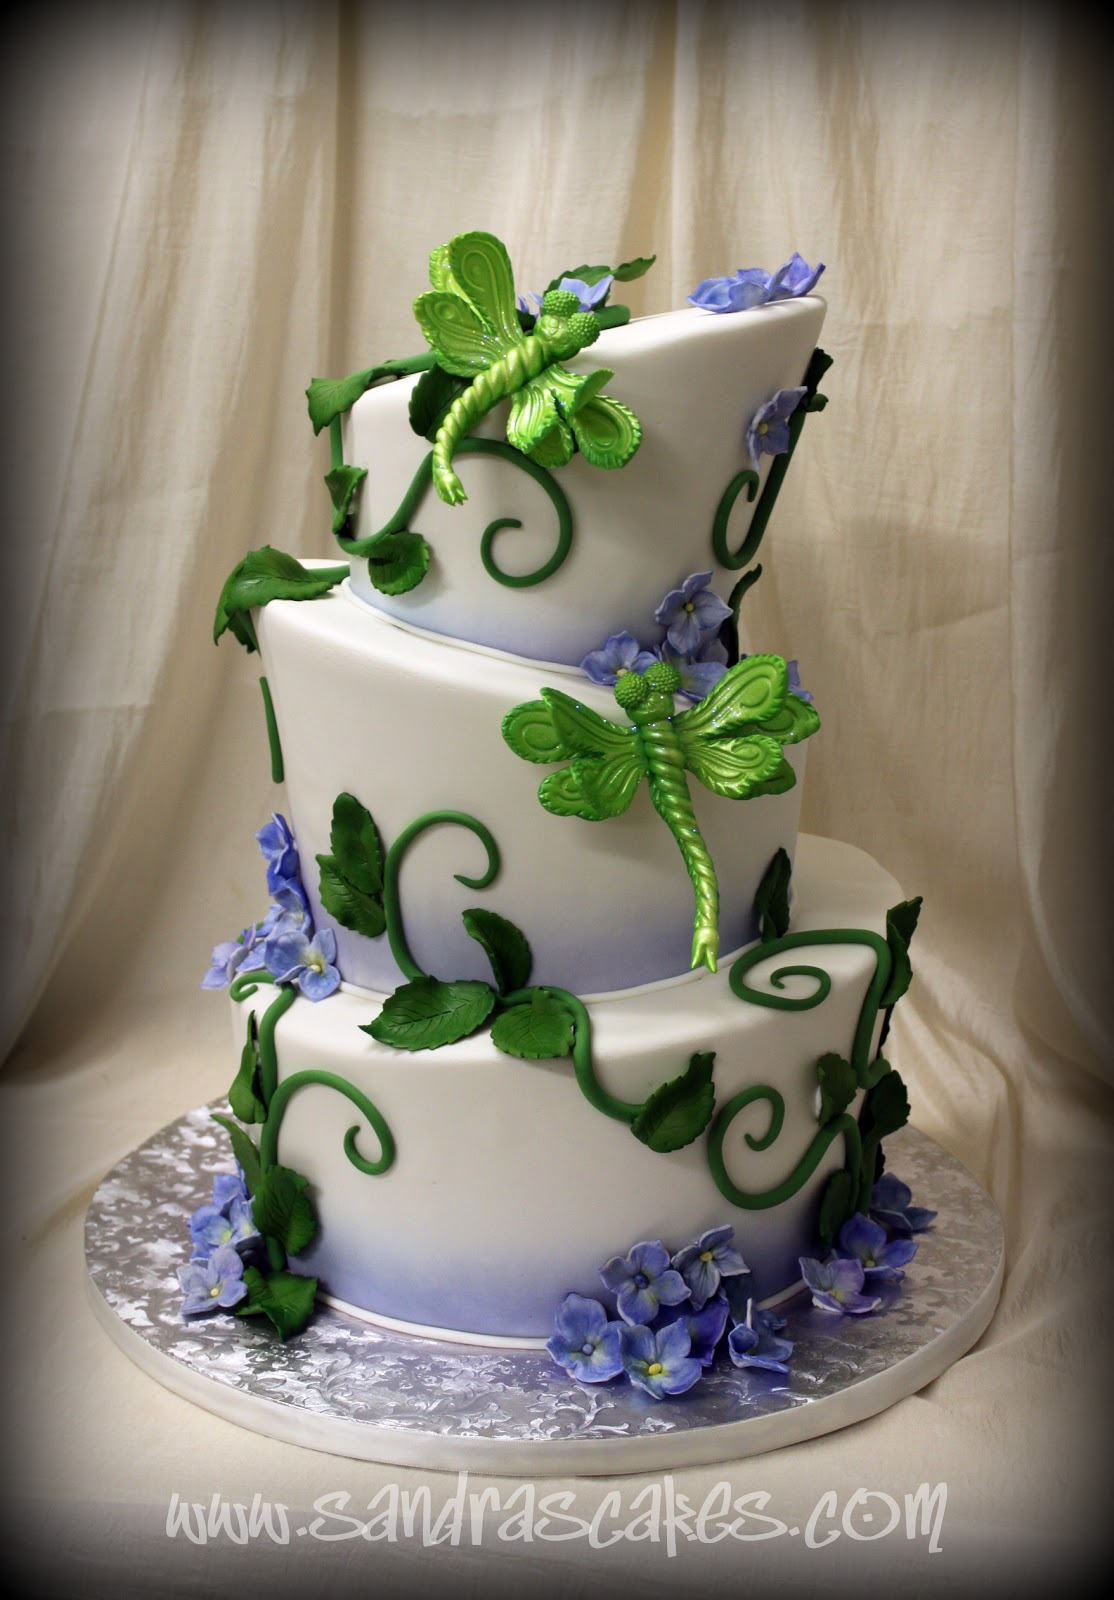 OUR WEDDING CAKES....EDIBLE WORKS OF ART